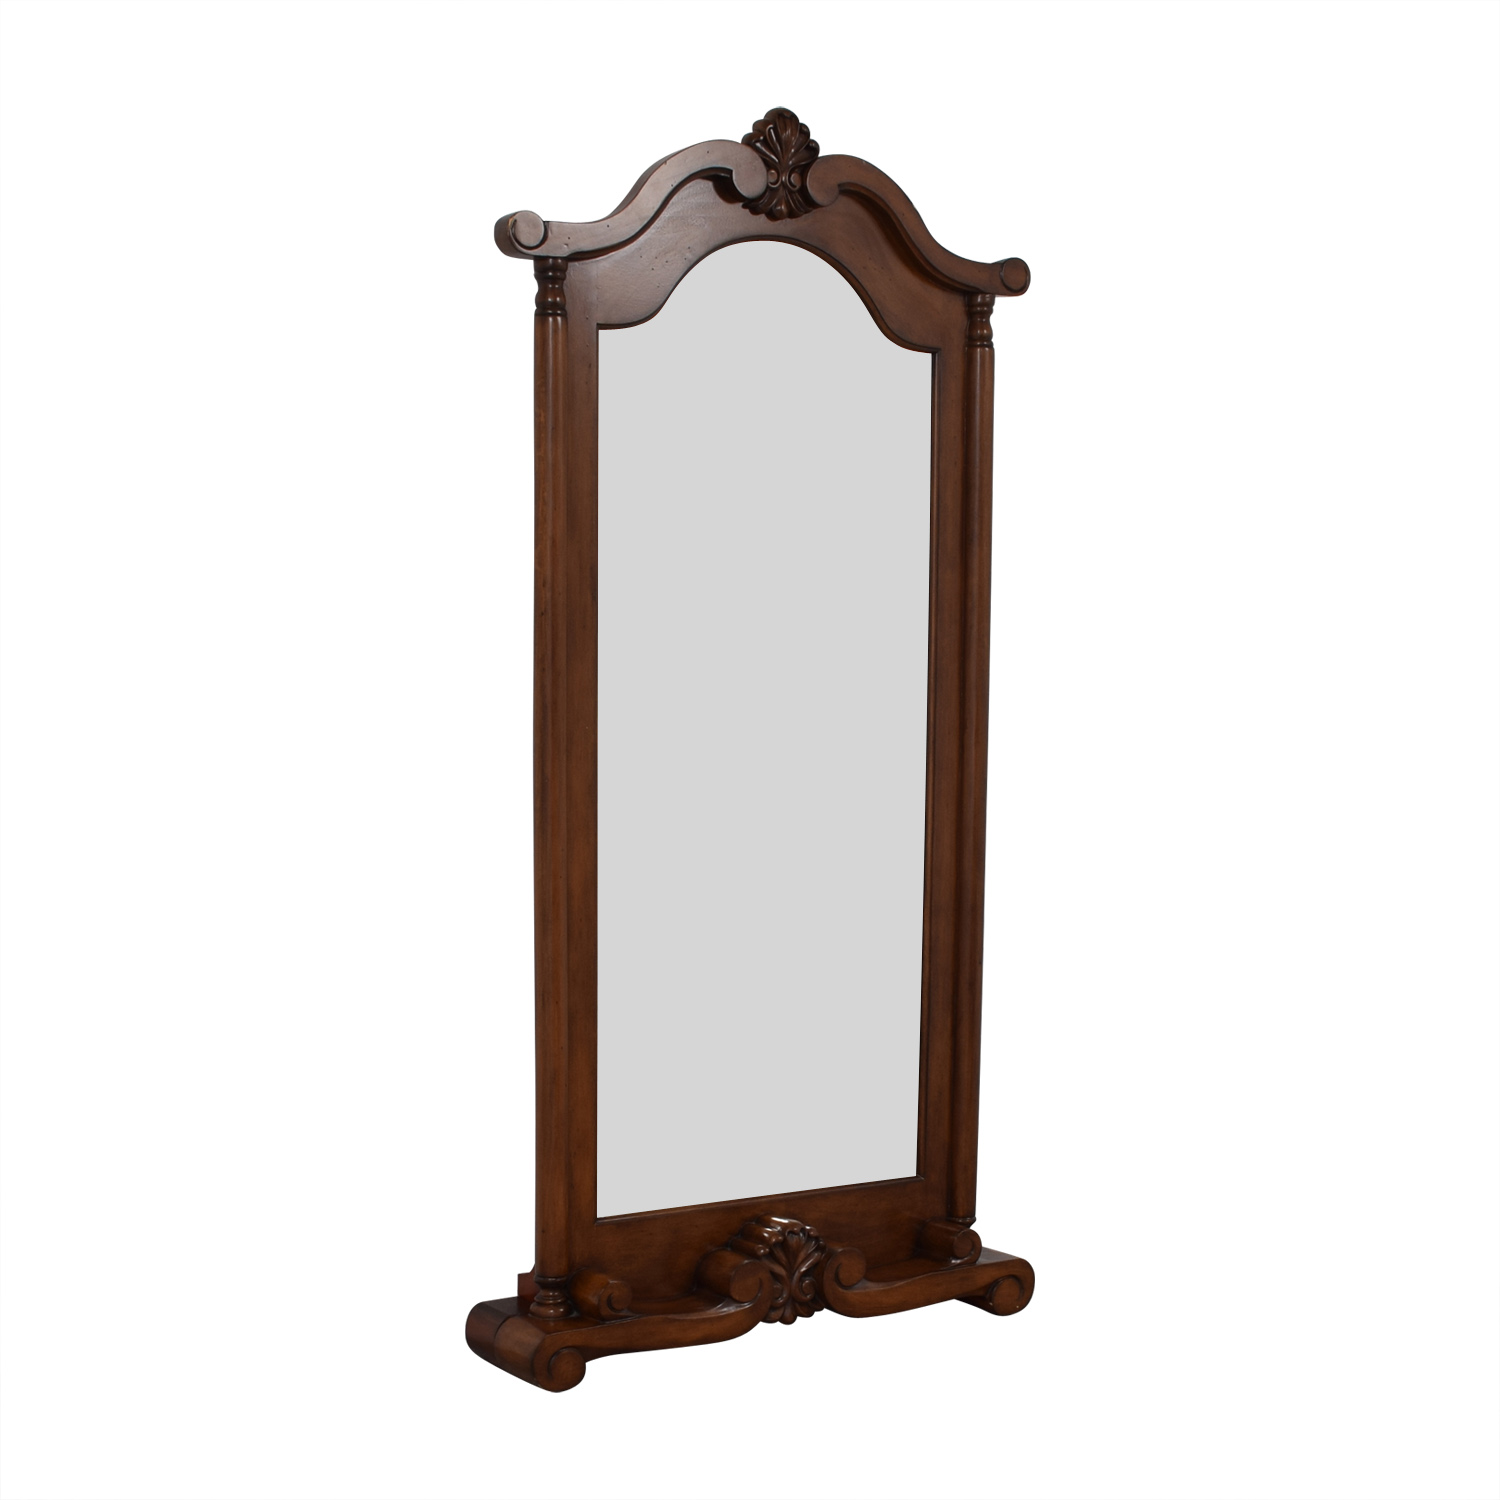 Coaster Coaster Carved Wood Framed Floor Mirror Mirrors